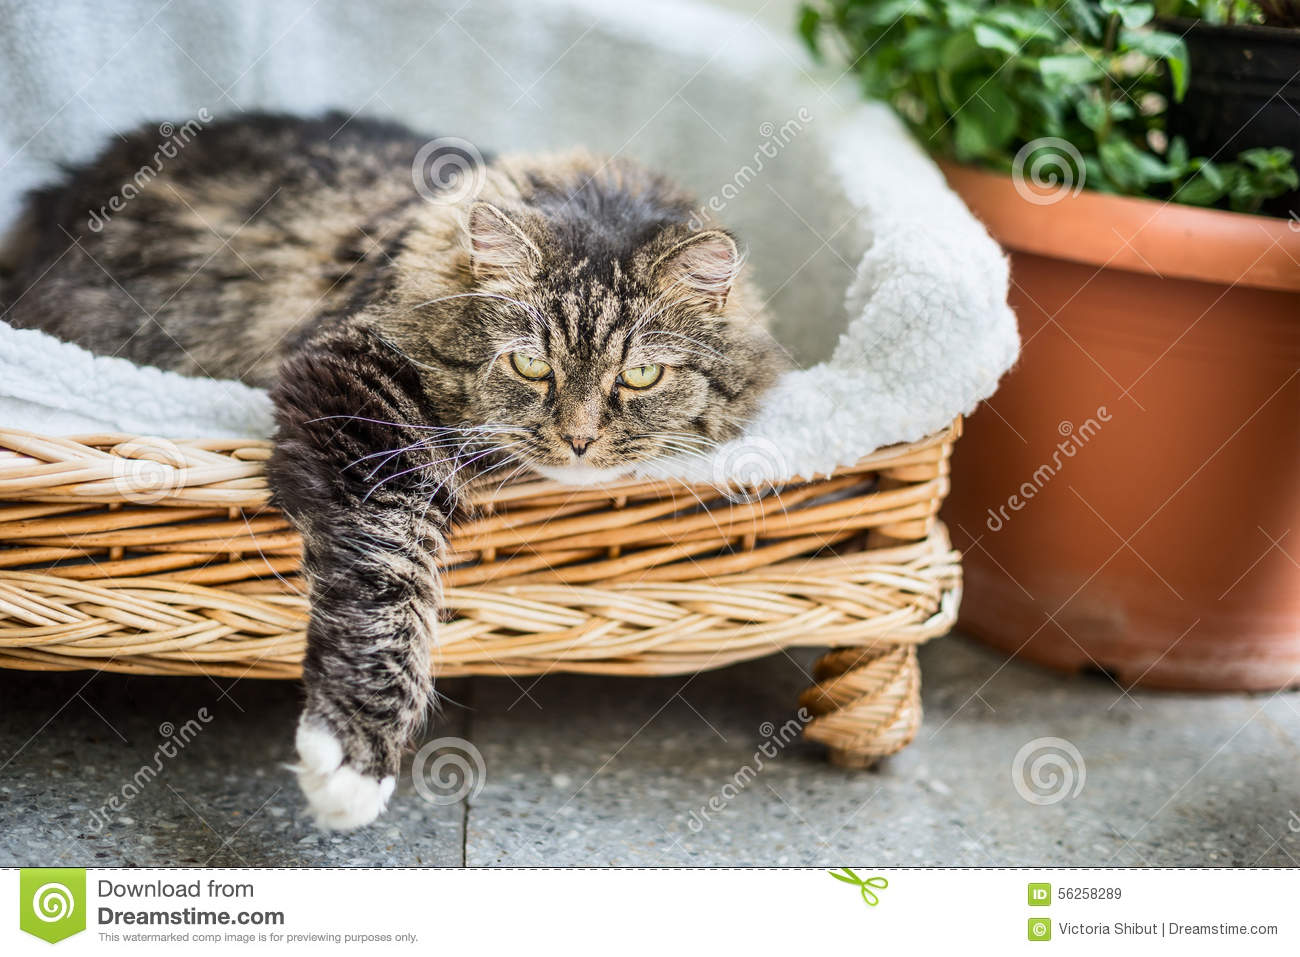 Big fluffy cat lying in wicker chaise sofa couch on balcony or garden terrace